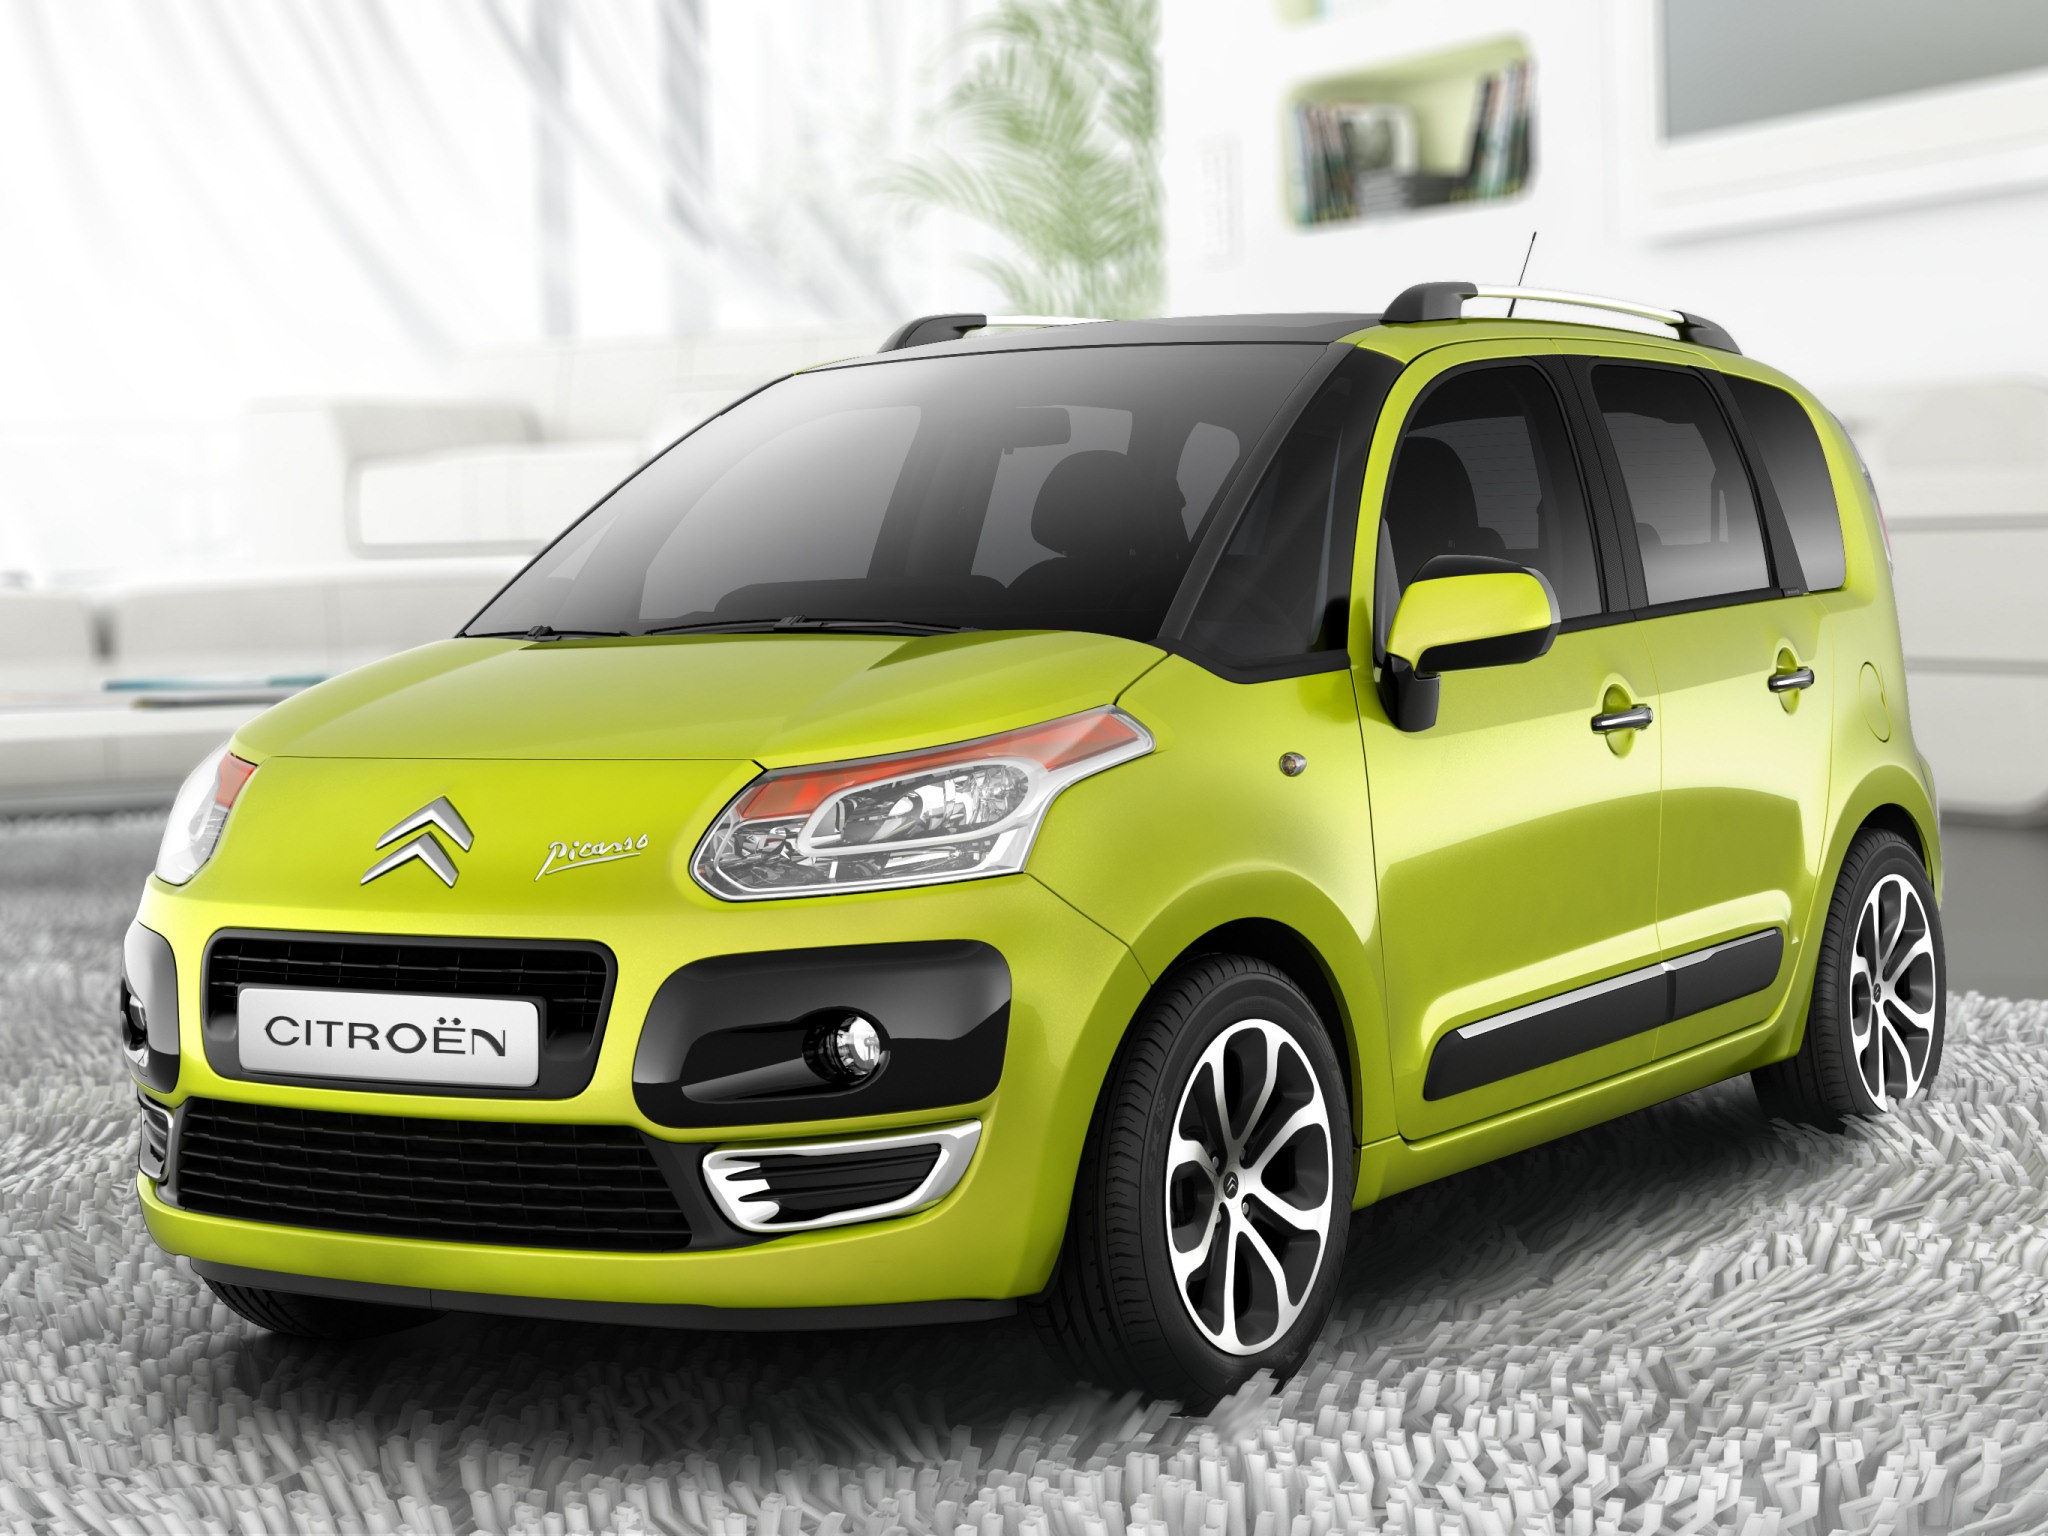 citroen c4 picasso 2012 manual pdf